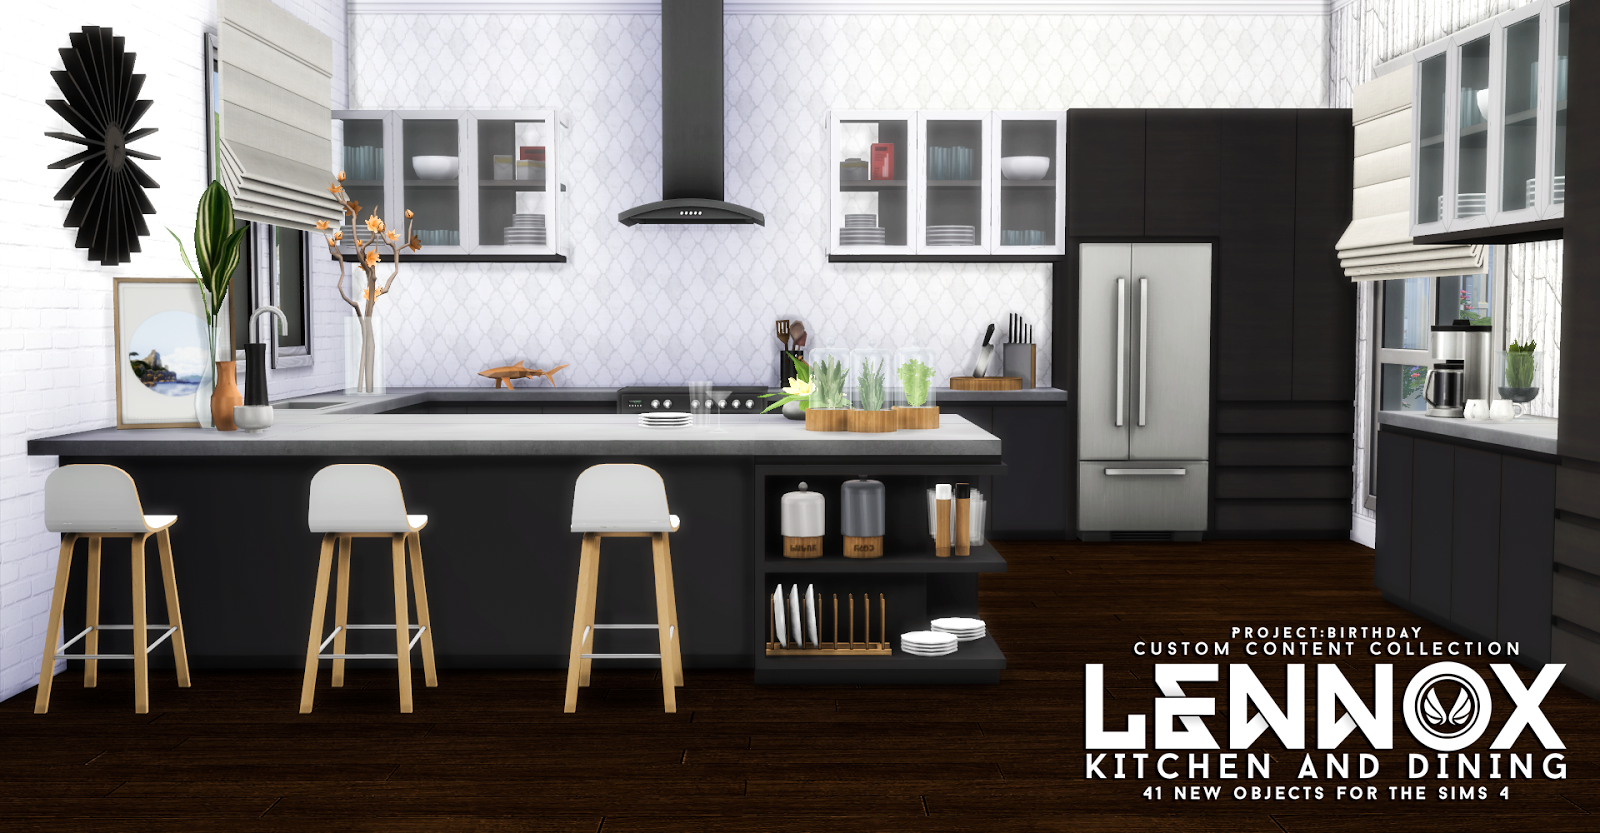 Sims Kitchen My Sims 4 Blog Updated Lennox Kitchen And Dining Set By